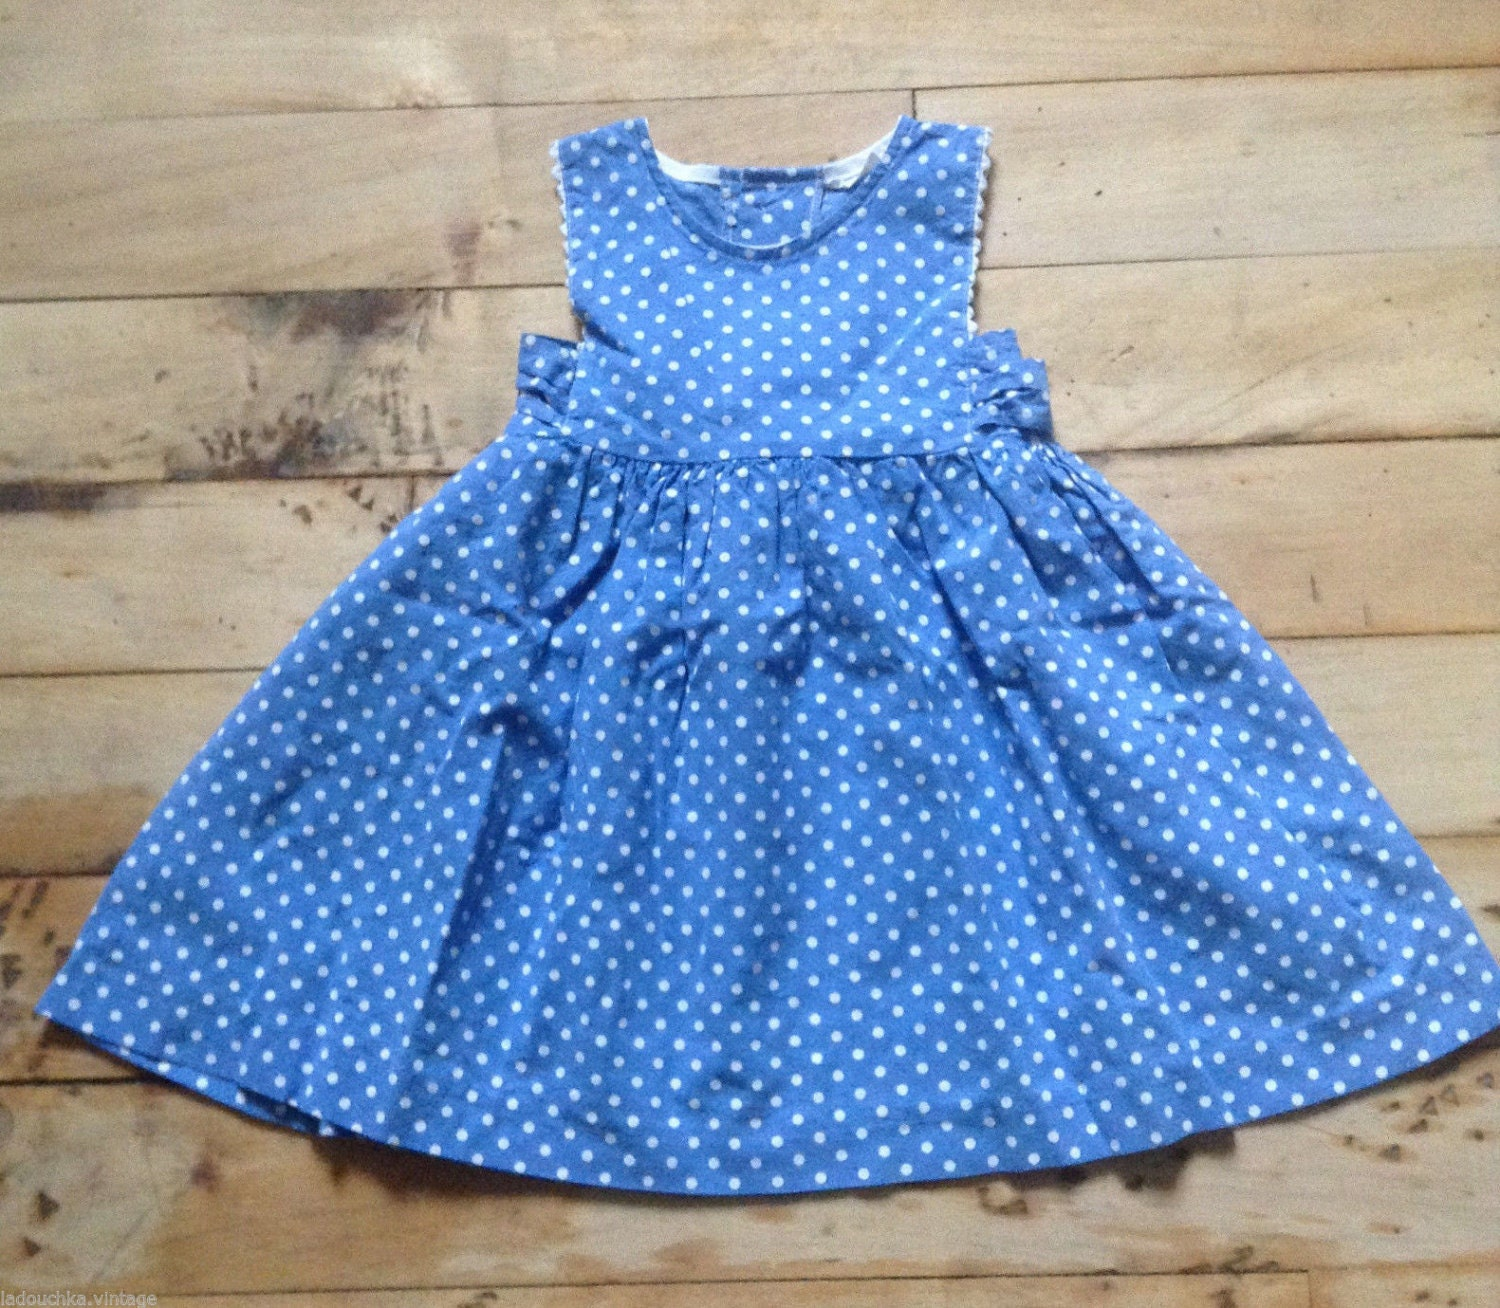 f915eafb7c French 1950s Baby Girl Cotton Sleeveless Summer Dress   Bow - Blue and  White Polka Dots